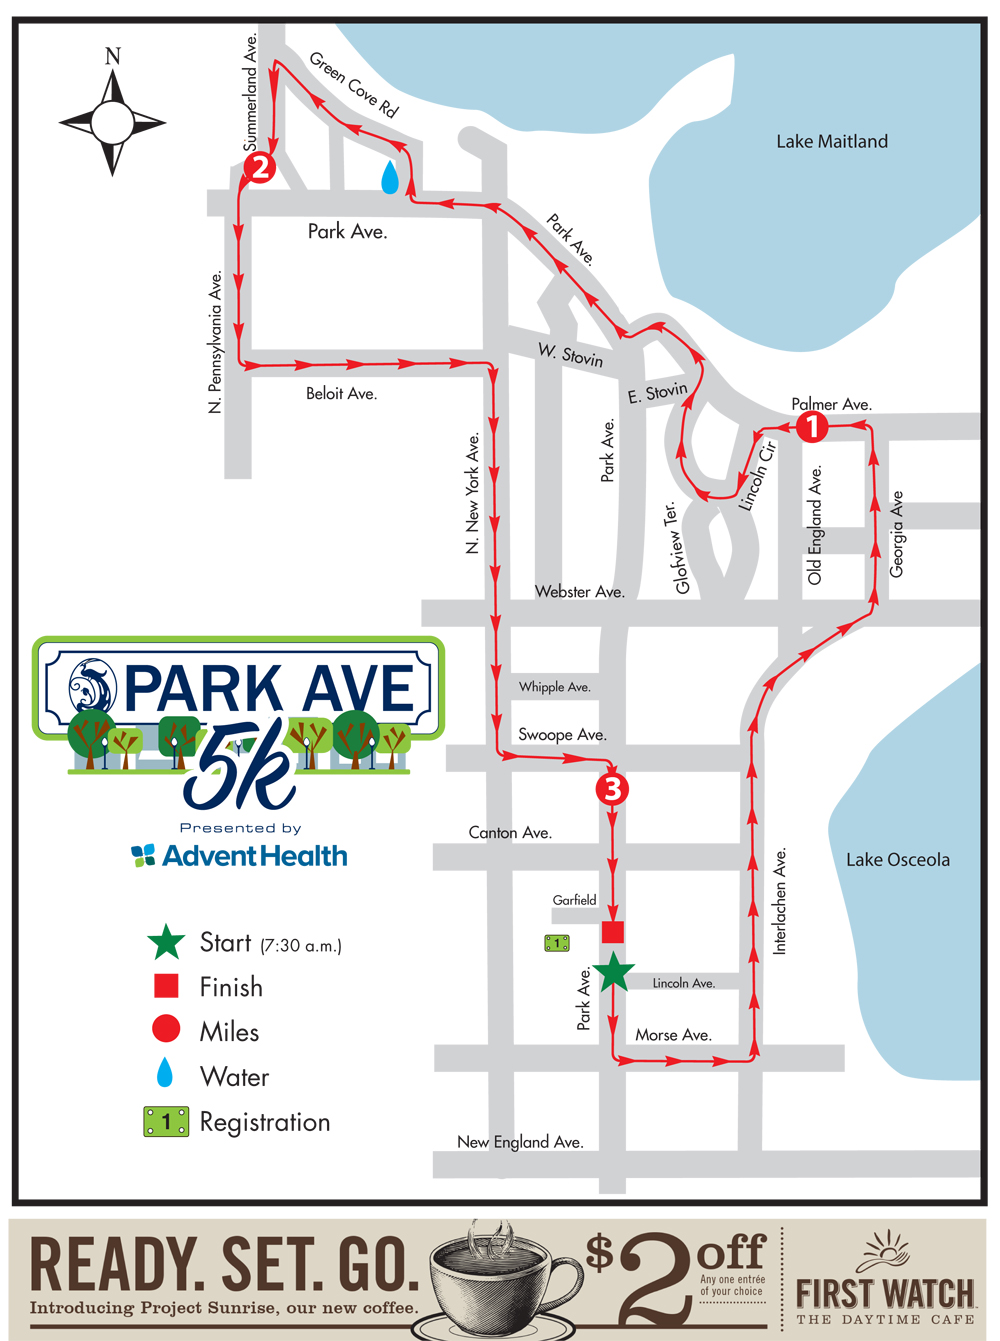 Track Shack Park Ave 5k Presented By Adventhealth Sold Out